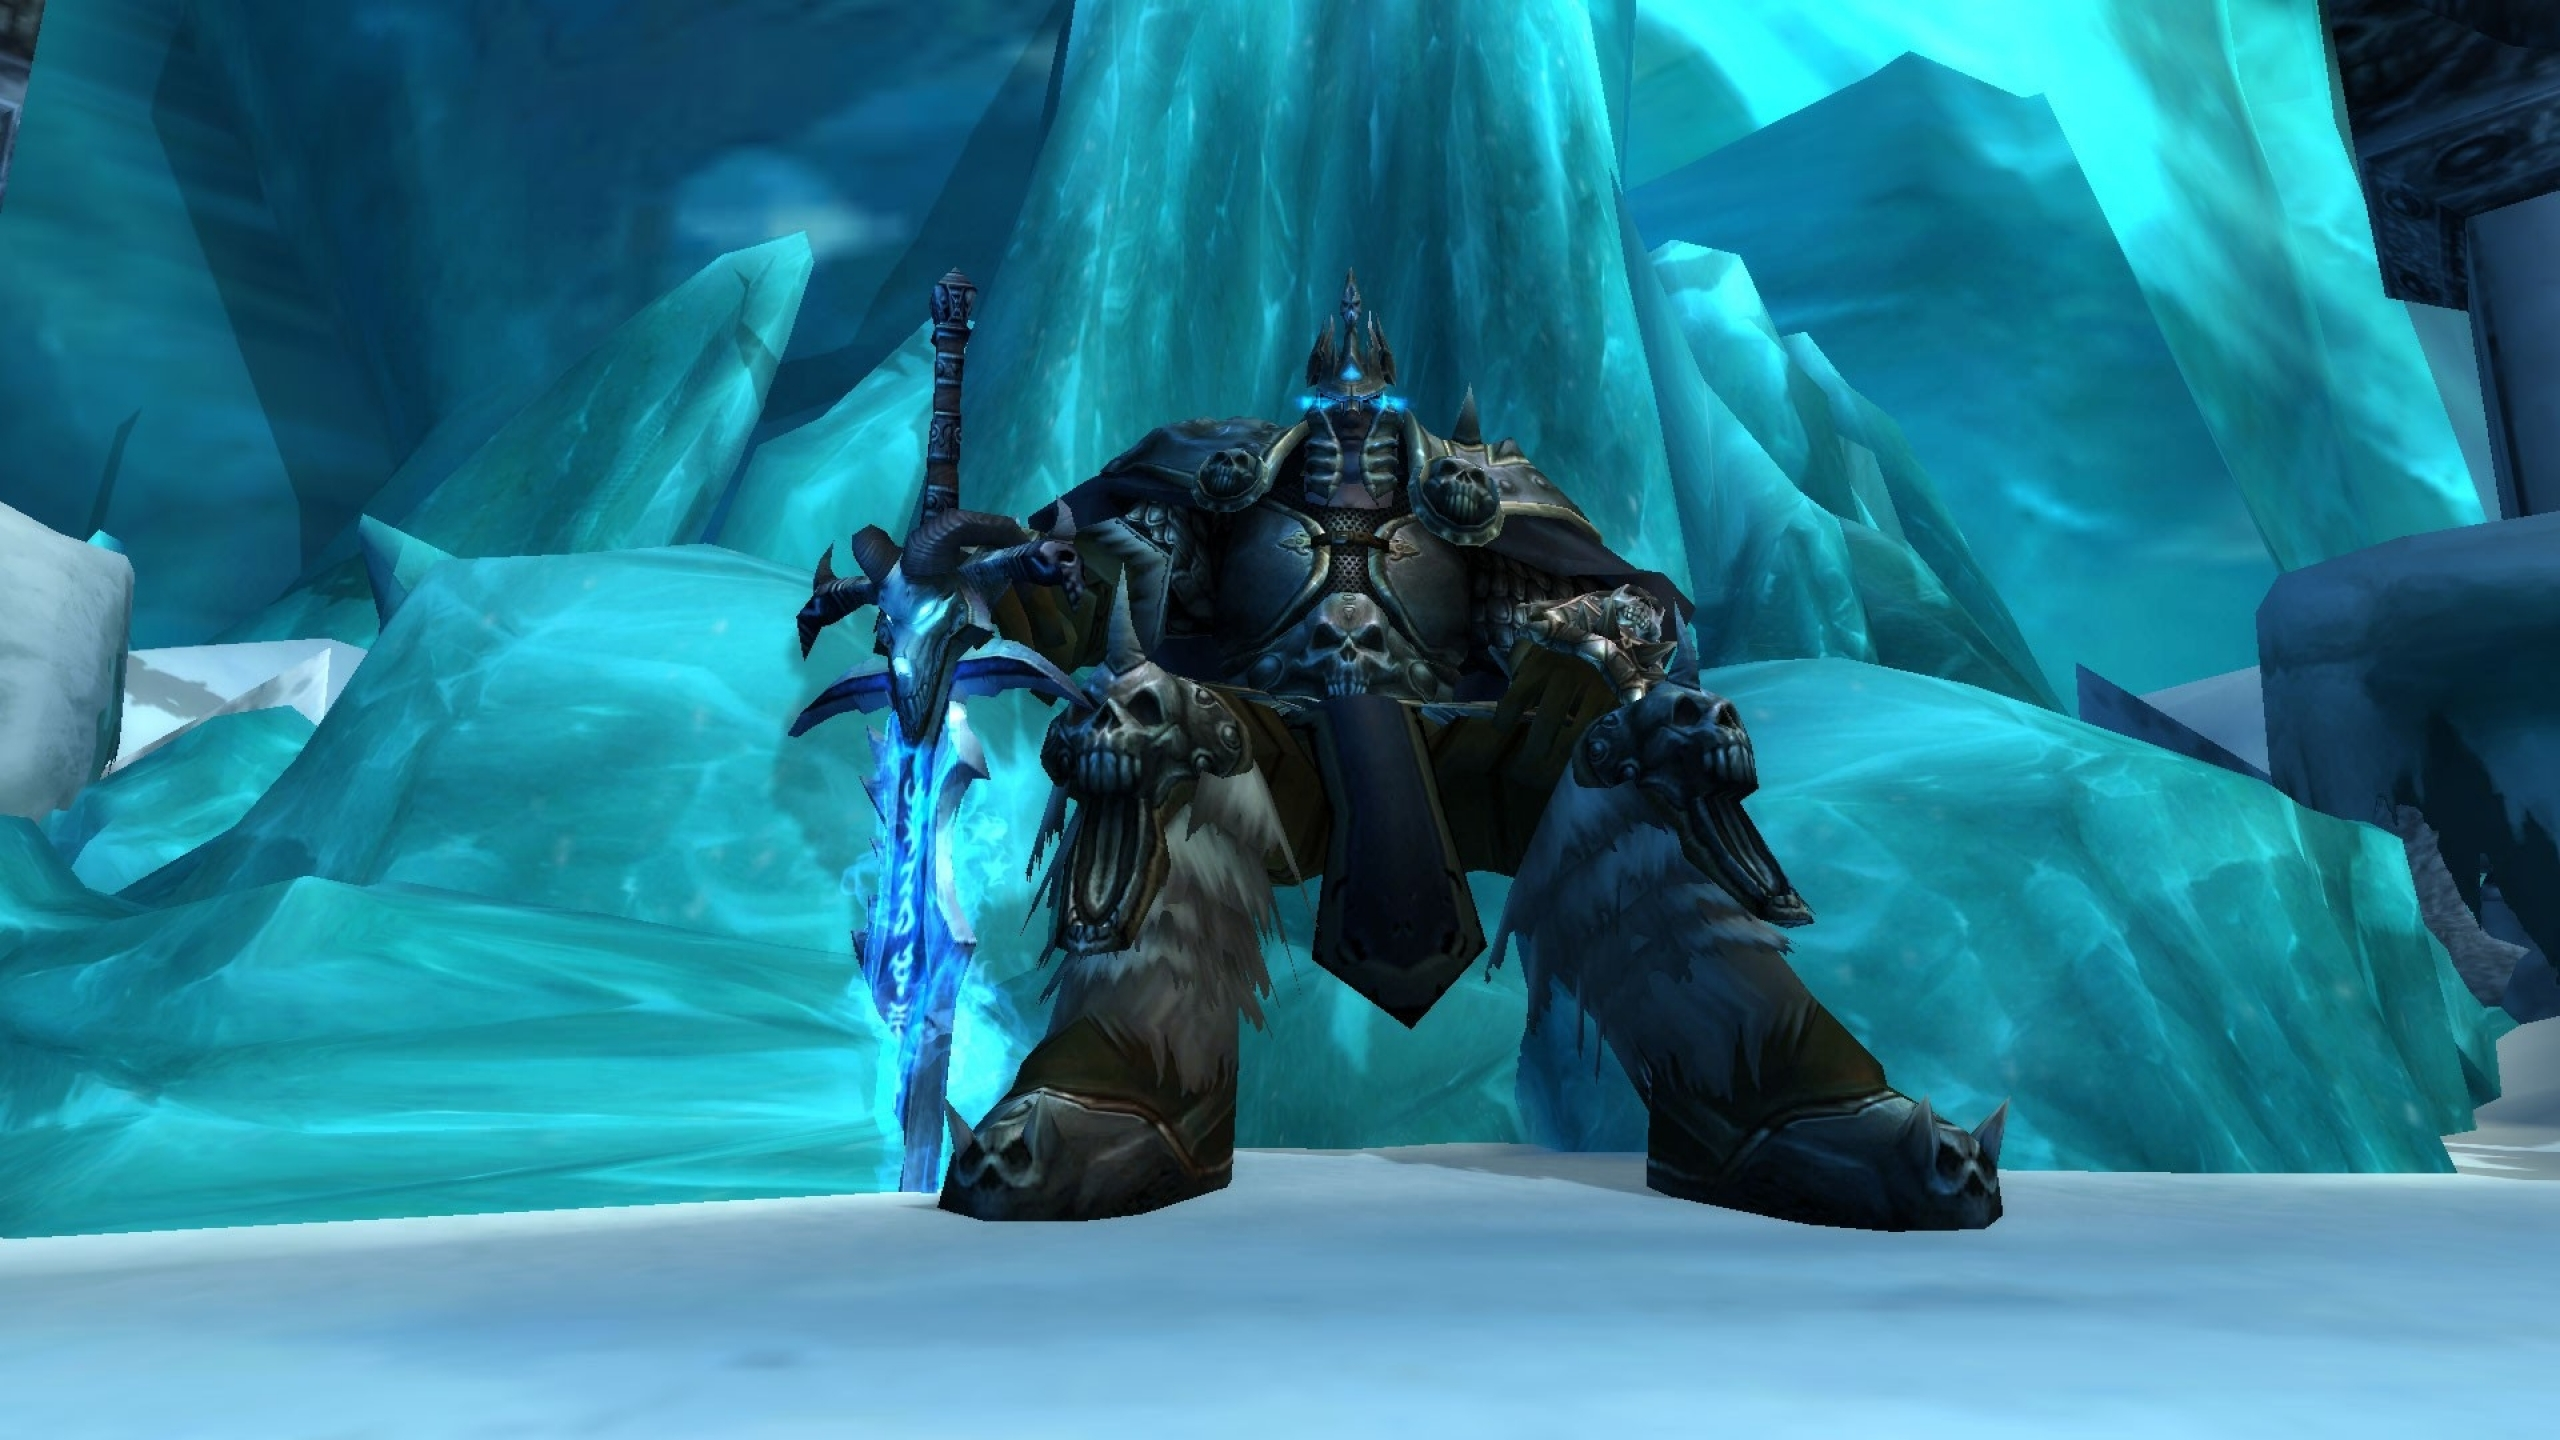 Lich King Warcraft Artwork Video Games Lich King Hd Hq